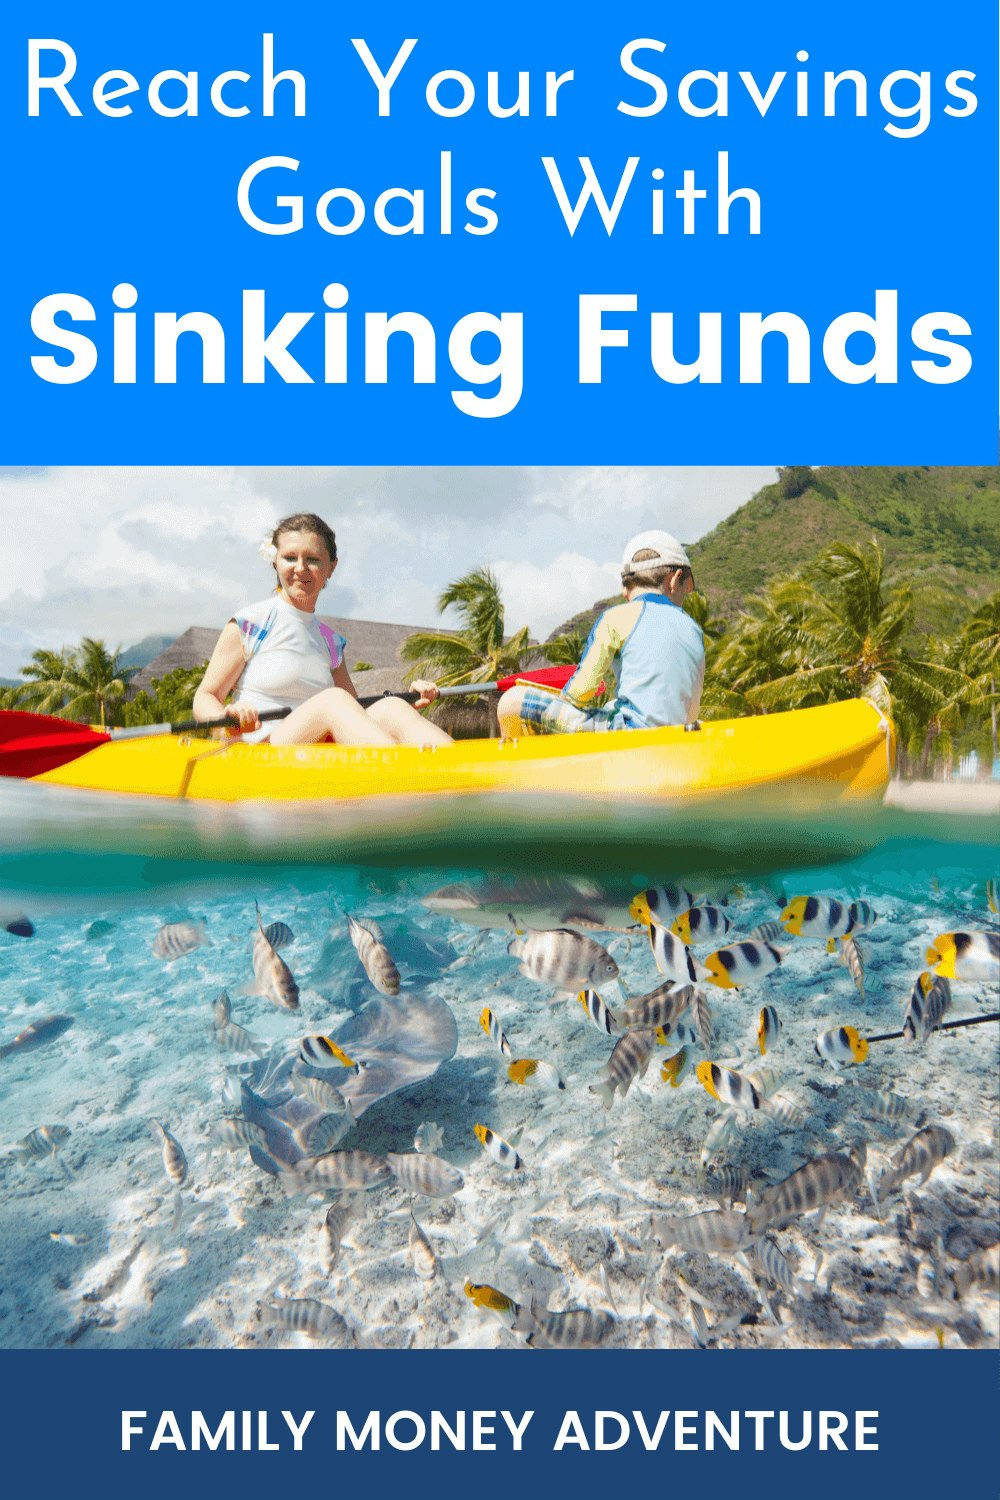 How Sinking Funds Can Help You Reach Your Savings Goals